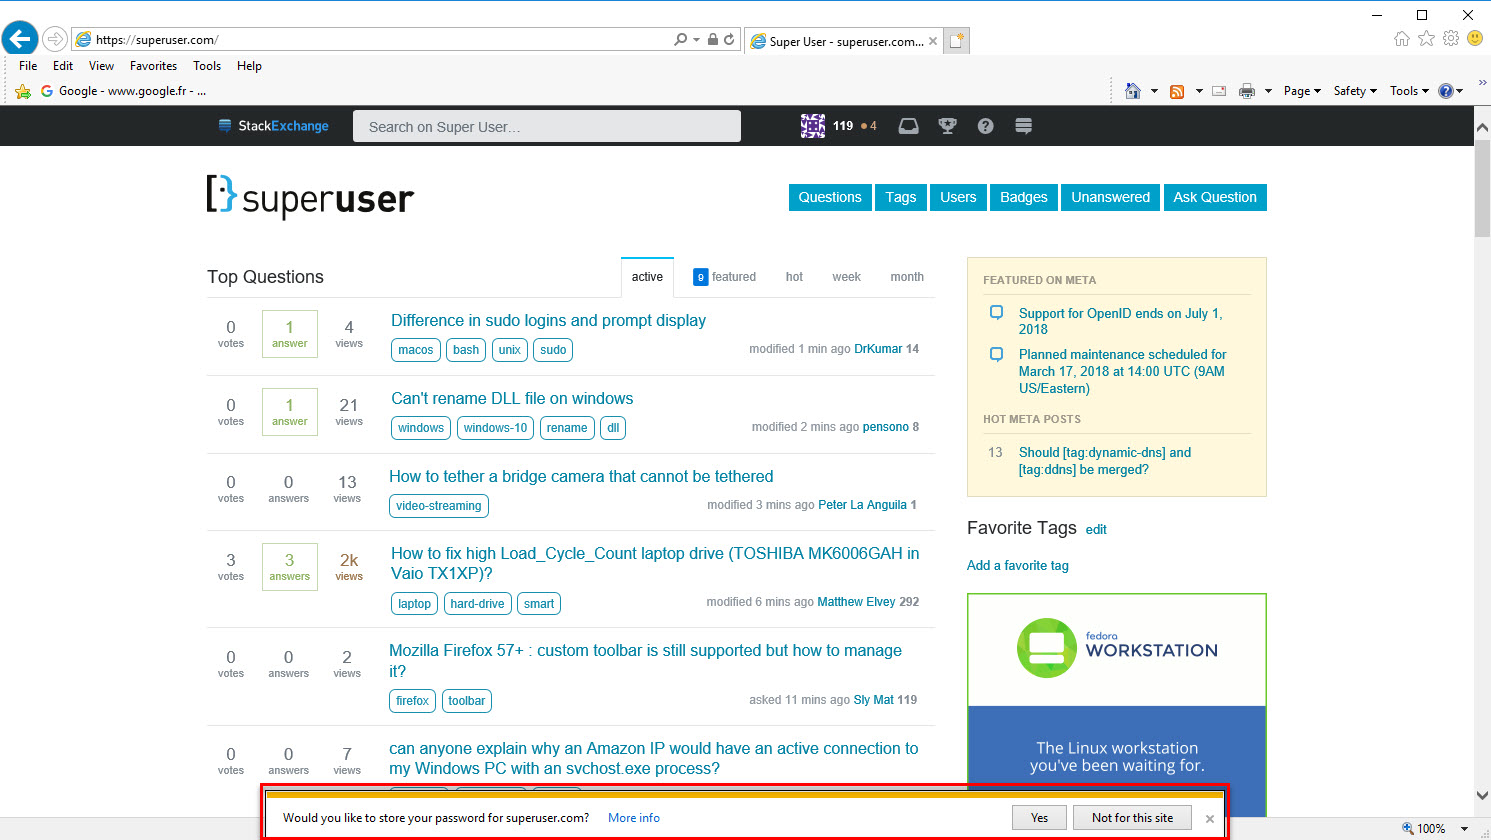 Internet Explorer 11 Is Storing Online Banking Usernames And Passwords Even Though You Tell... vOPoX.jpg